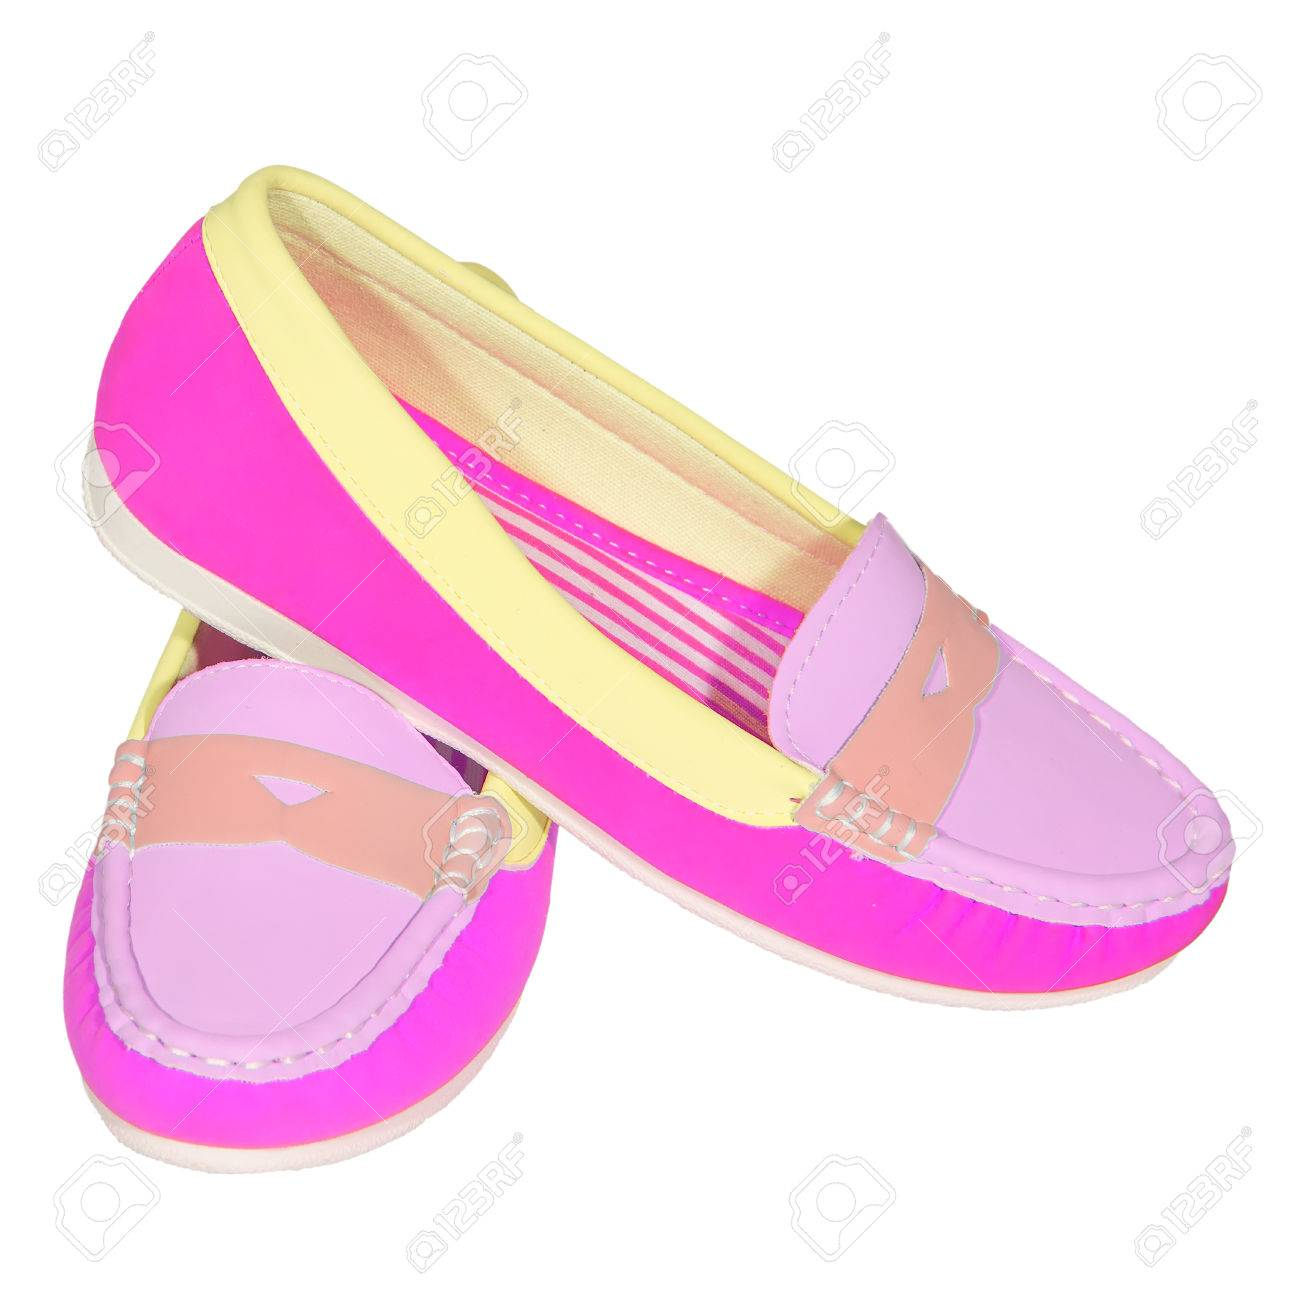 96b30a234 shoes ballet flats multicolored baby female white background isolated Stock  Photo - 36145202